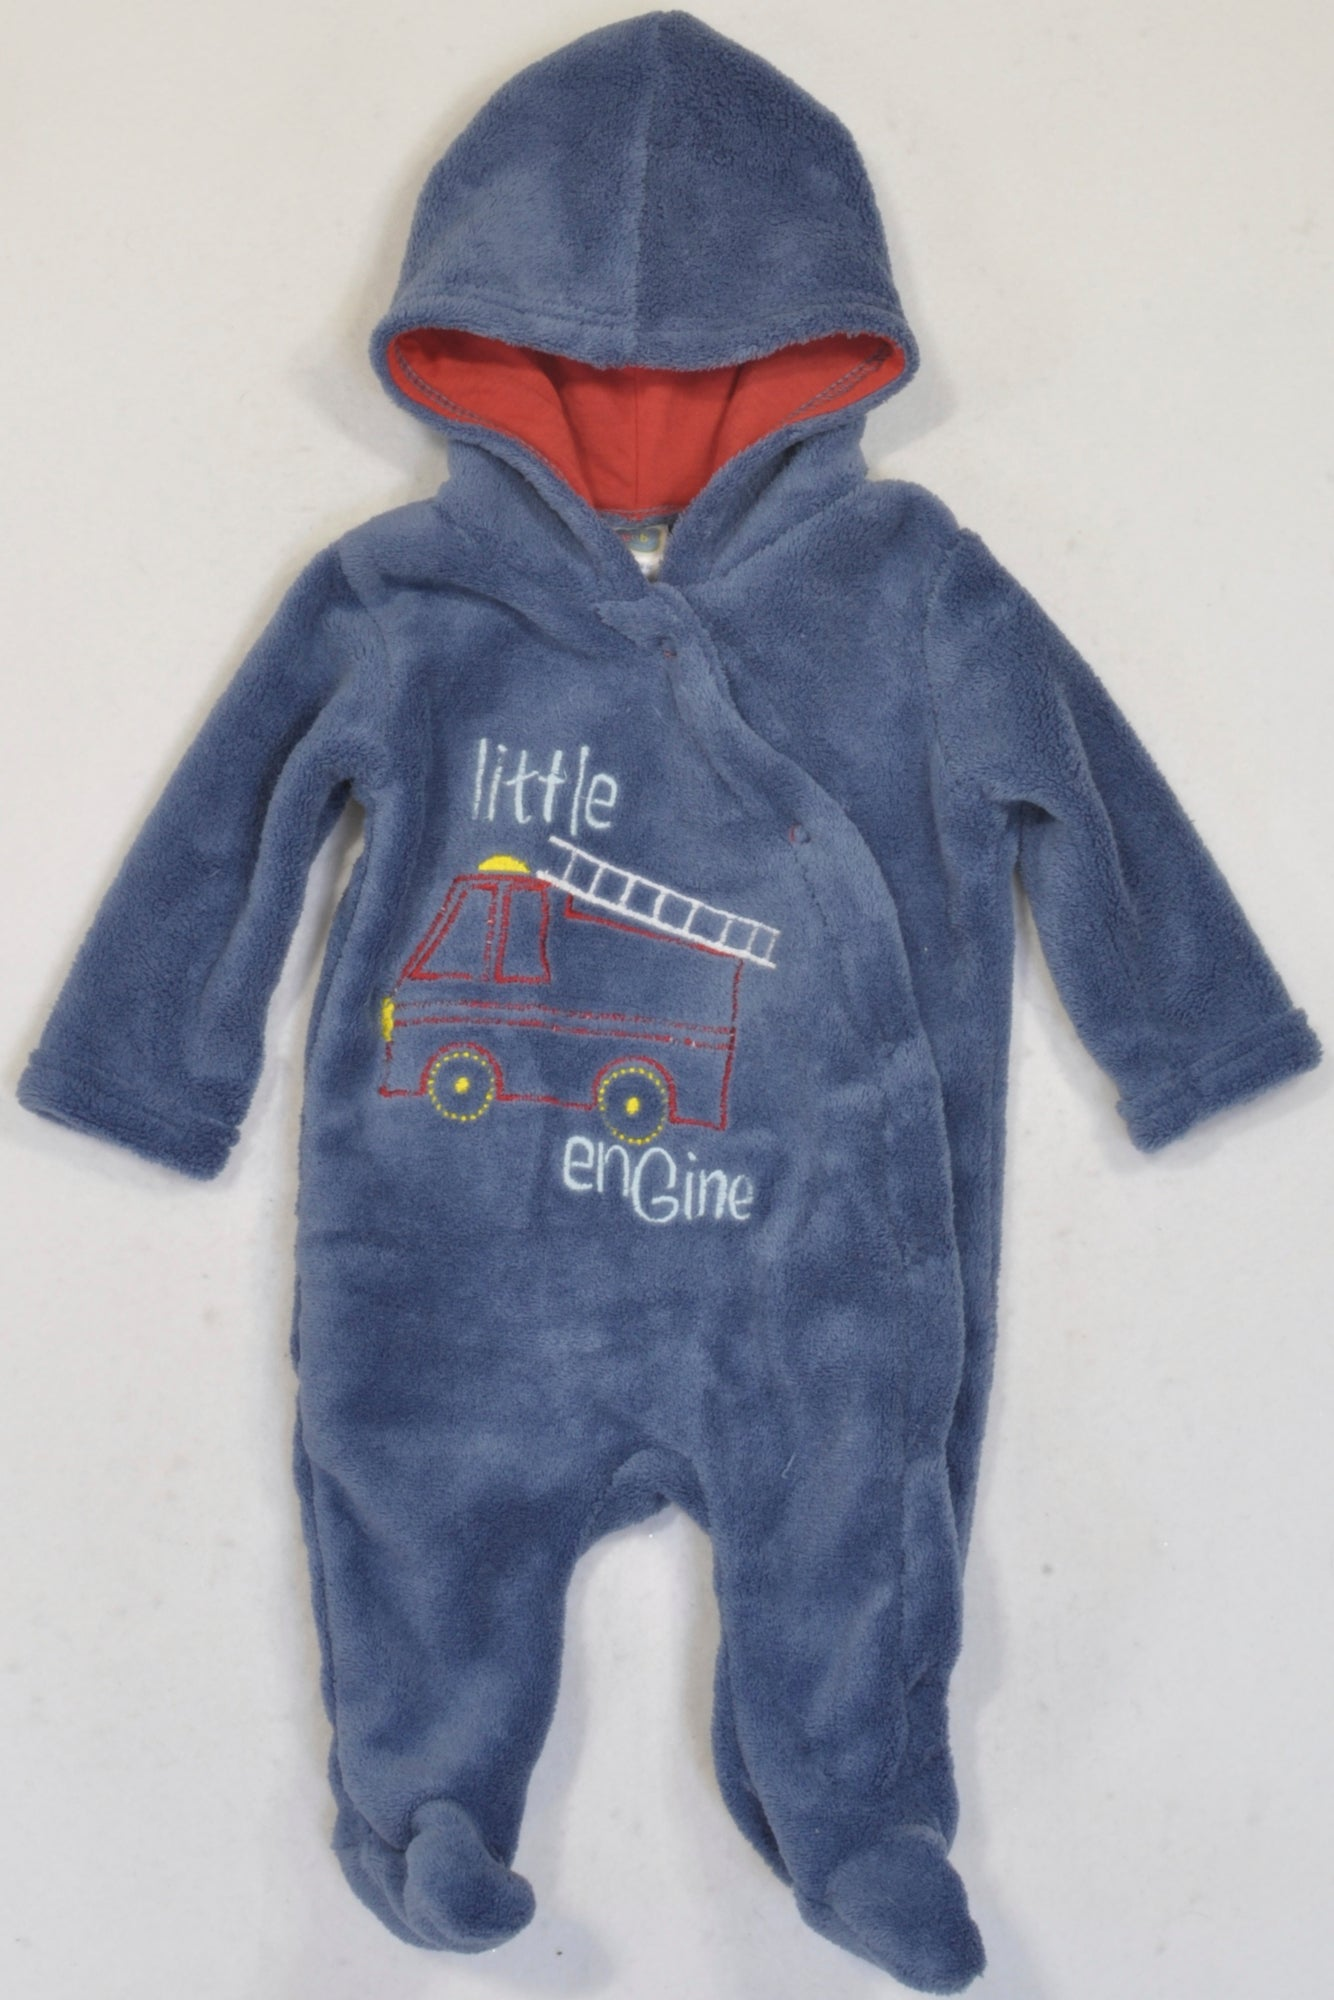 Ackermans Blue Fleece Little Engine Hooded Onesie Boys 0 3 Months